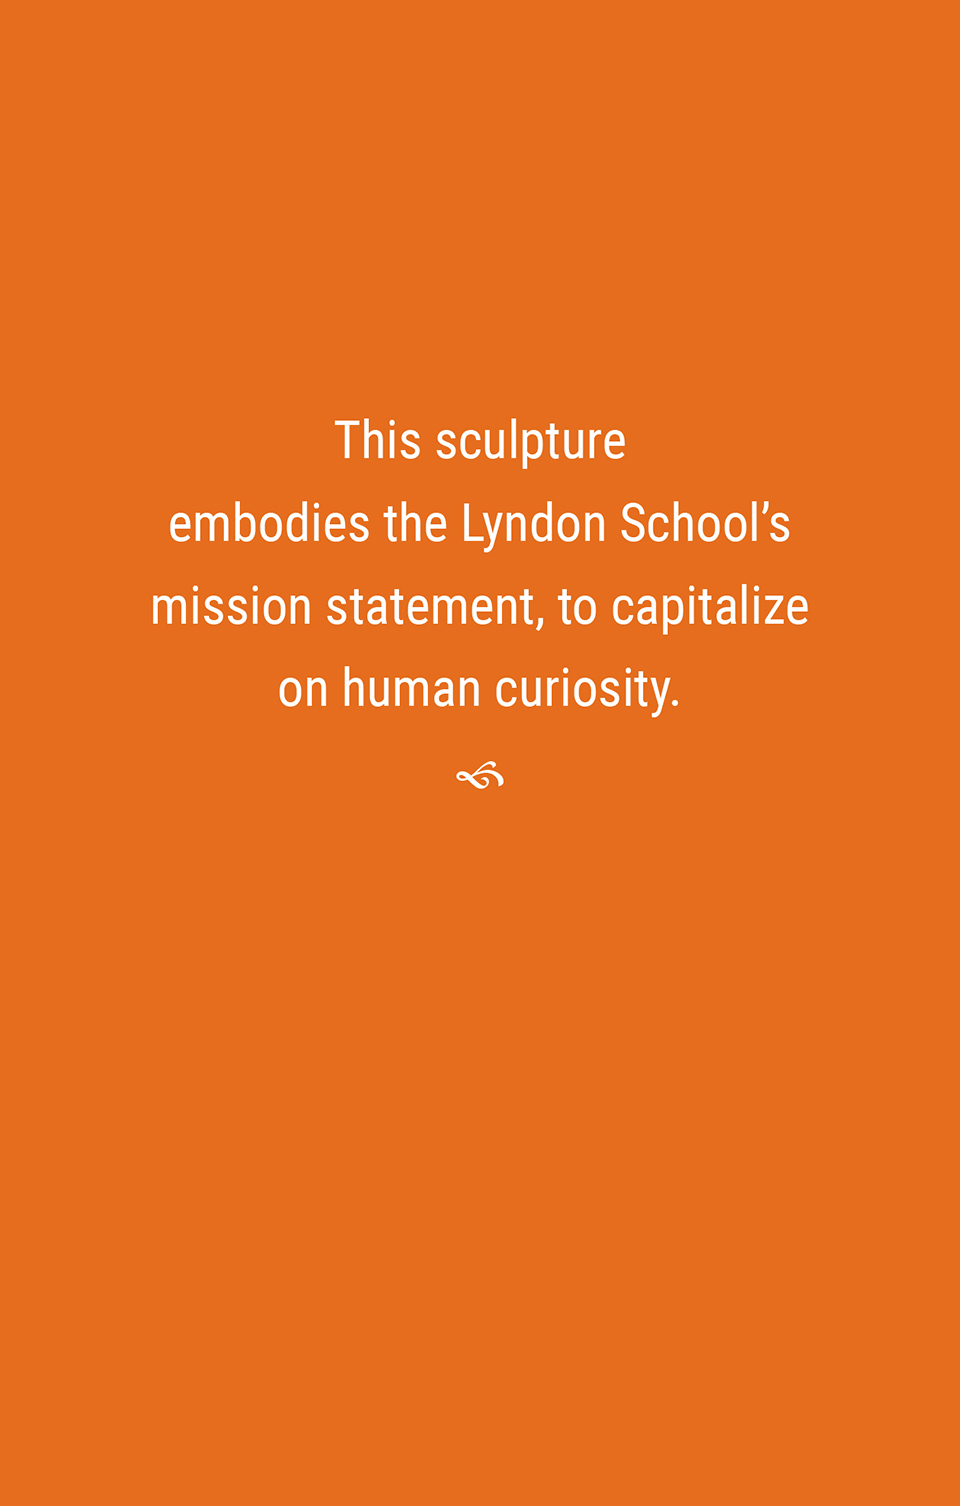 This sculpture embodies the Lyndon School's mission statement—to capitalize on human curiosity.